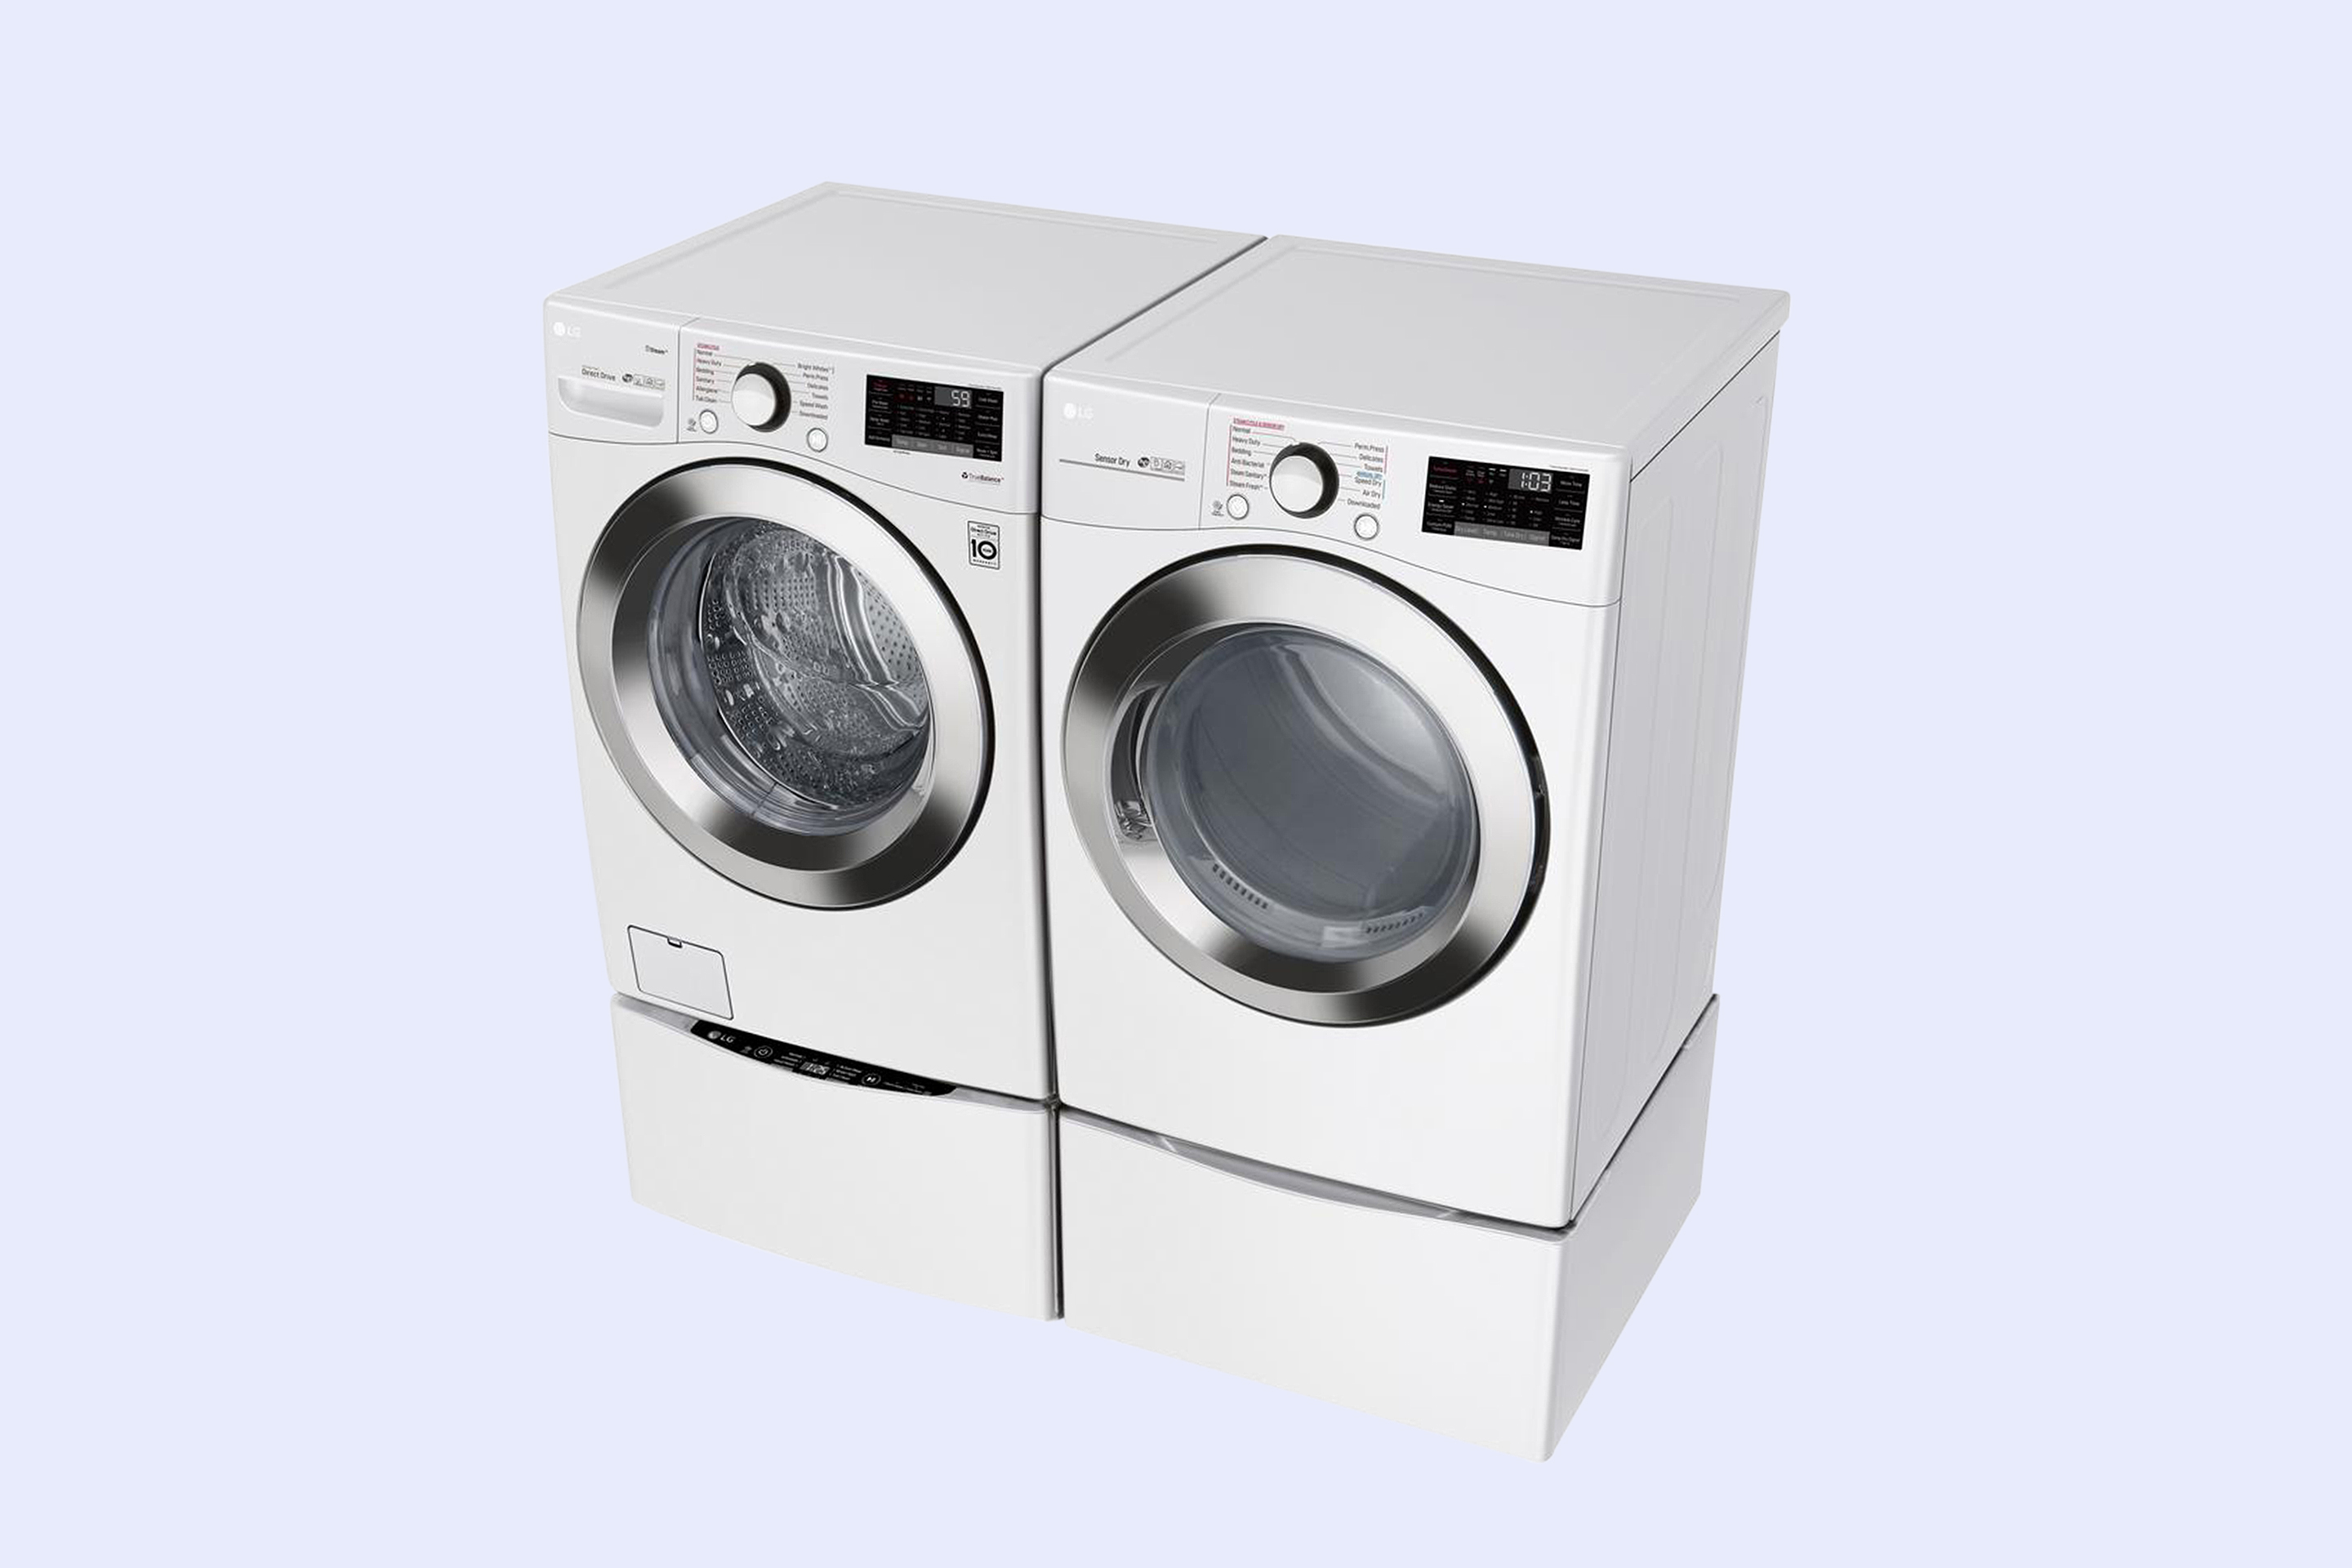 Best Washer And Dryer Updated September 2020 Money